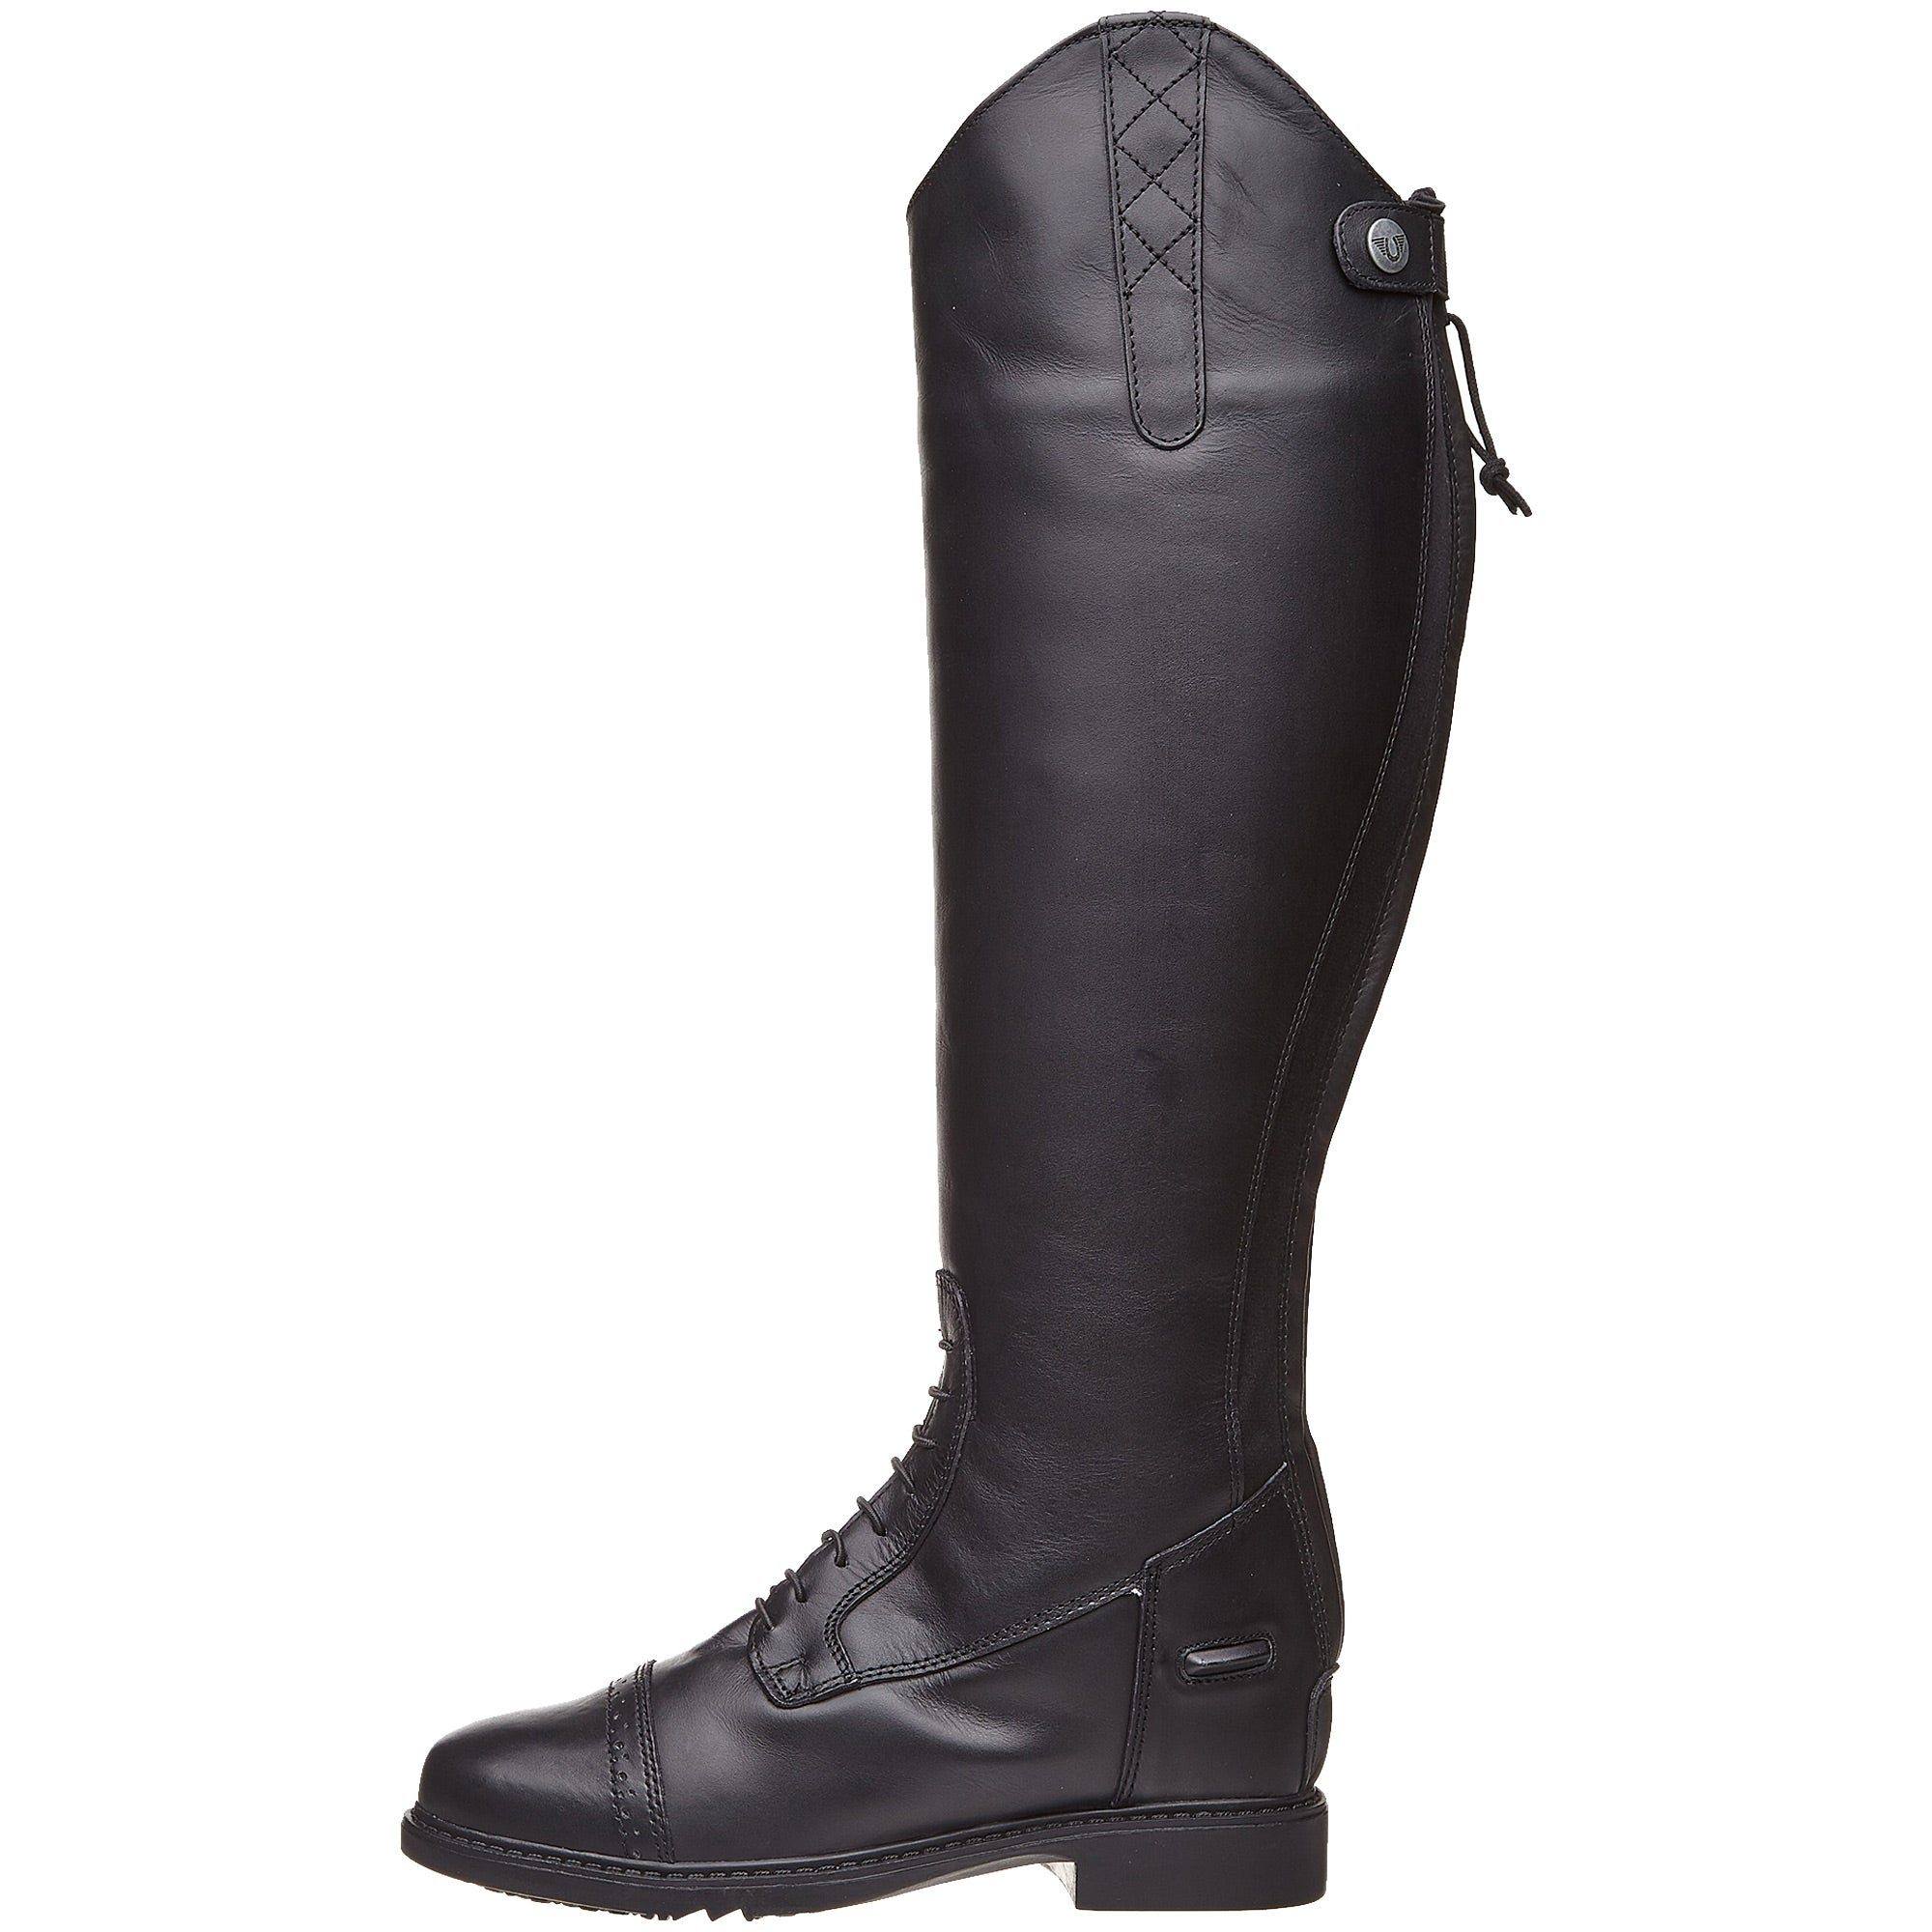 9310d863dc1 TuffRider Ladies' Plus Size Rider Tall Field Boots - Riding Warehouse